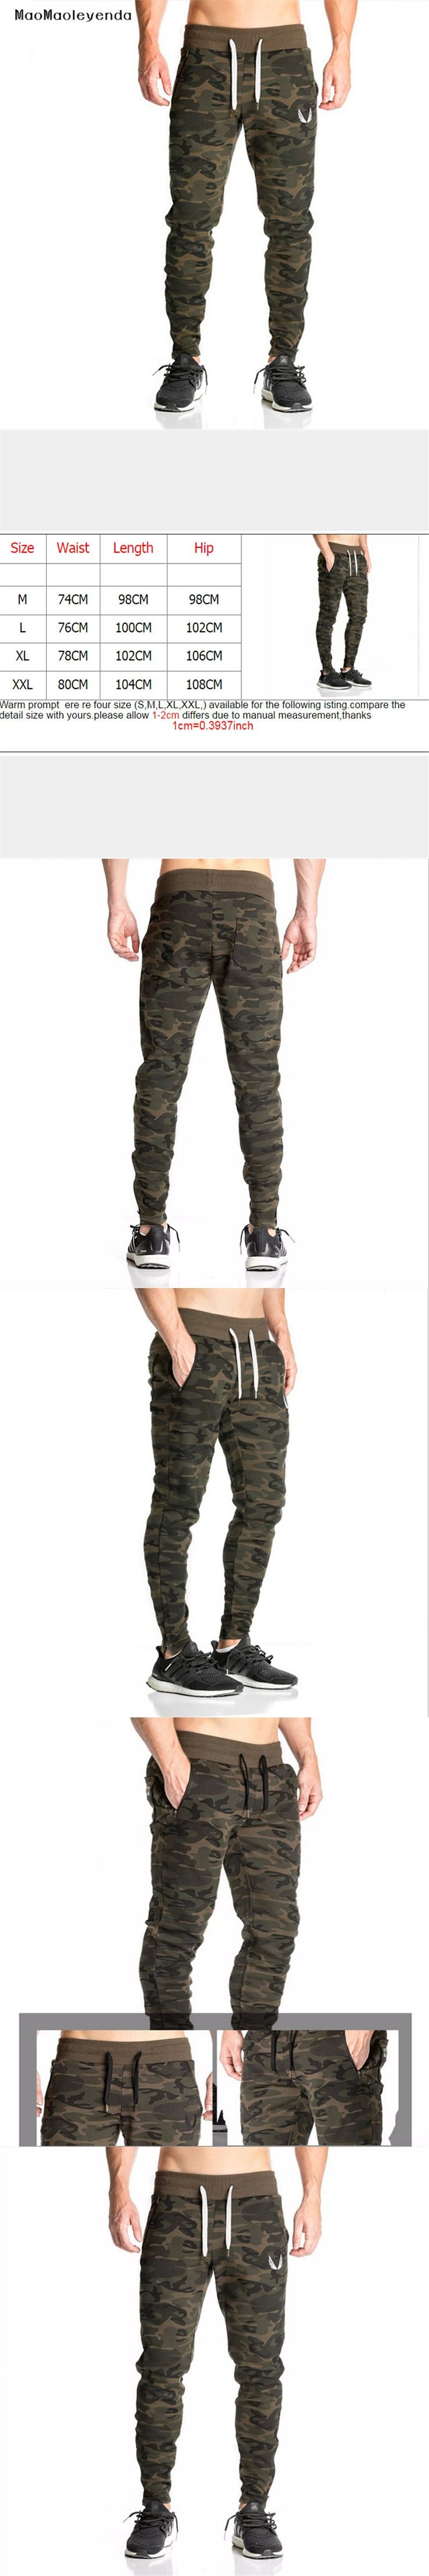 2017 maomaoleyenda pants Men's gasp workout bodybuilding clothing casual camouflage sweatpants joggers pants skinny trousers